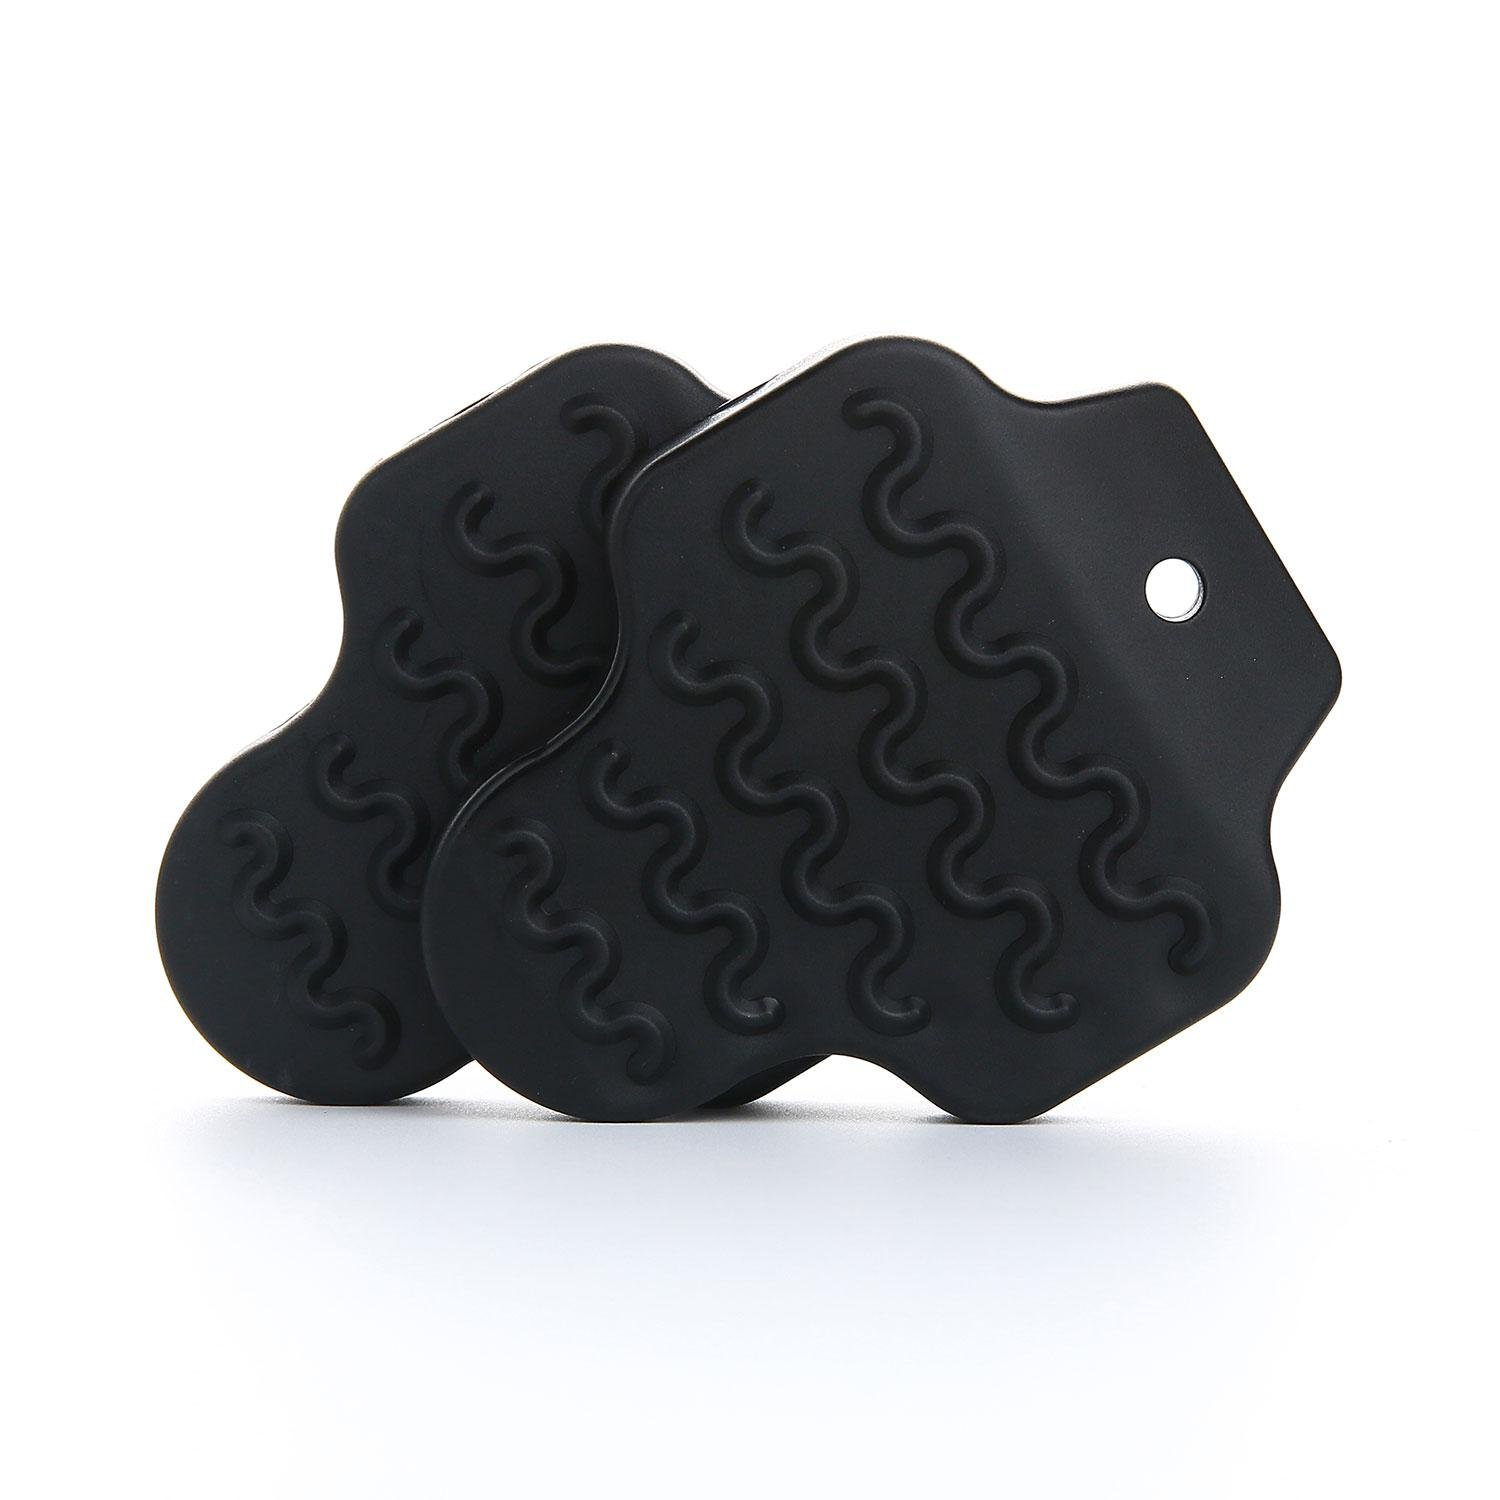 Amazon.com : Aolvo Bike Shoe Cleat Covers, Anti Slip Quick ...